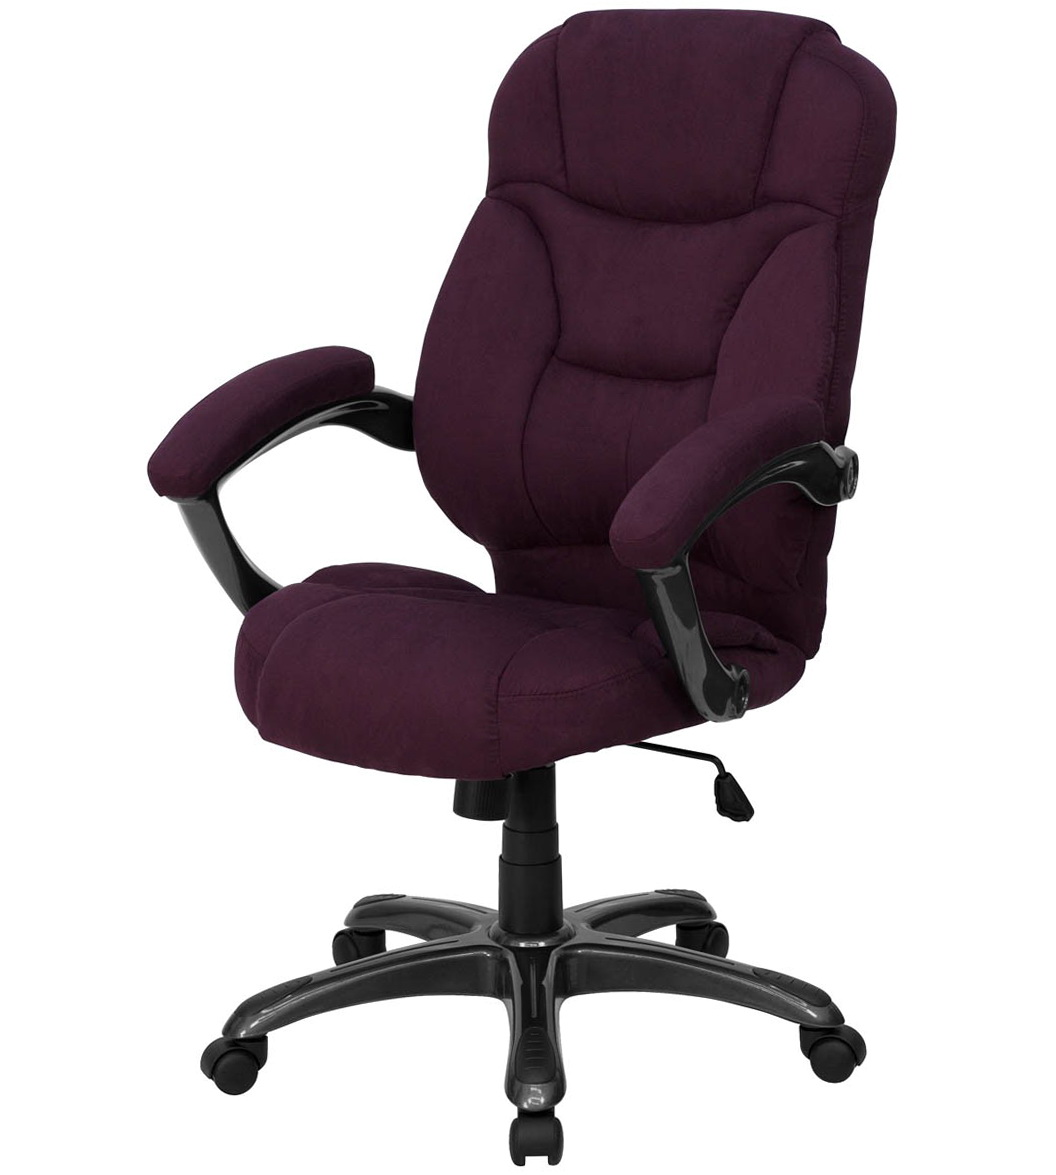 best office chair for hemorrhoids kids reading chairs cushions walmart home design ideas